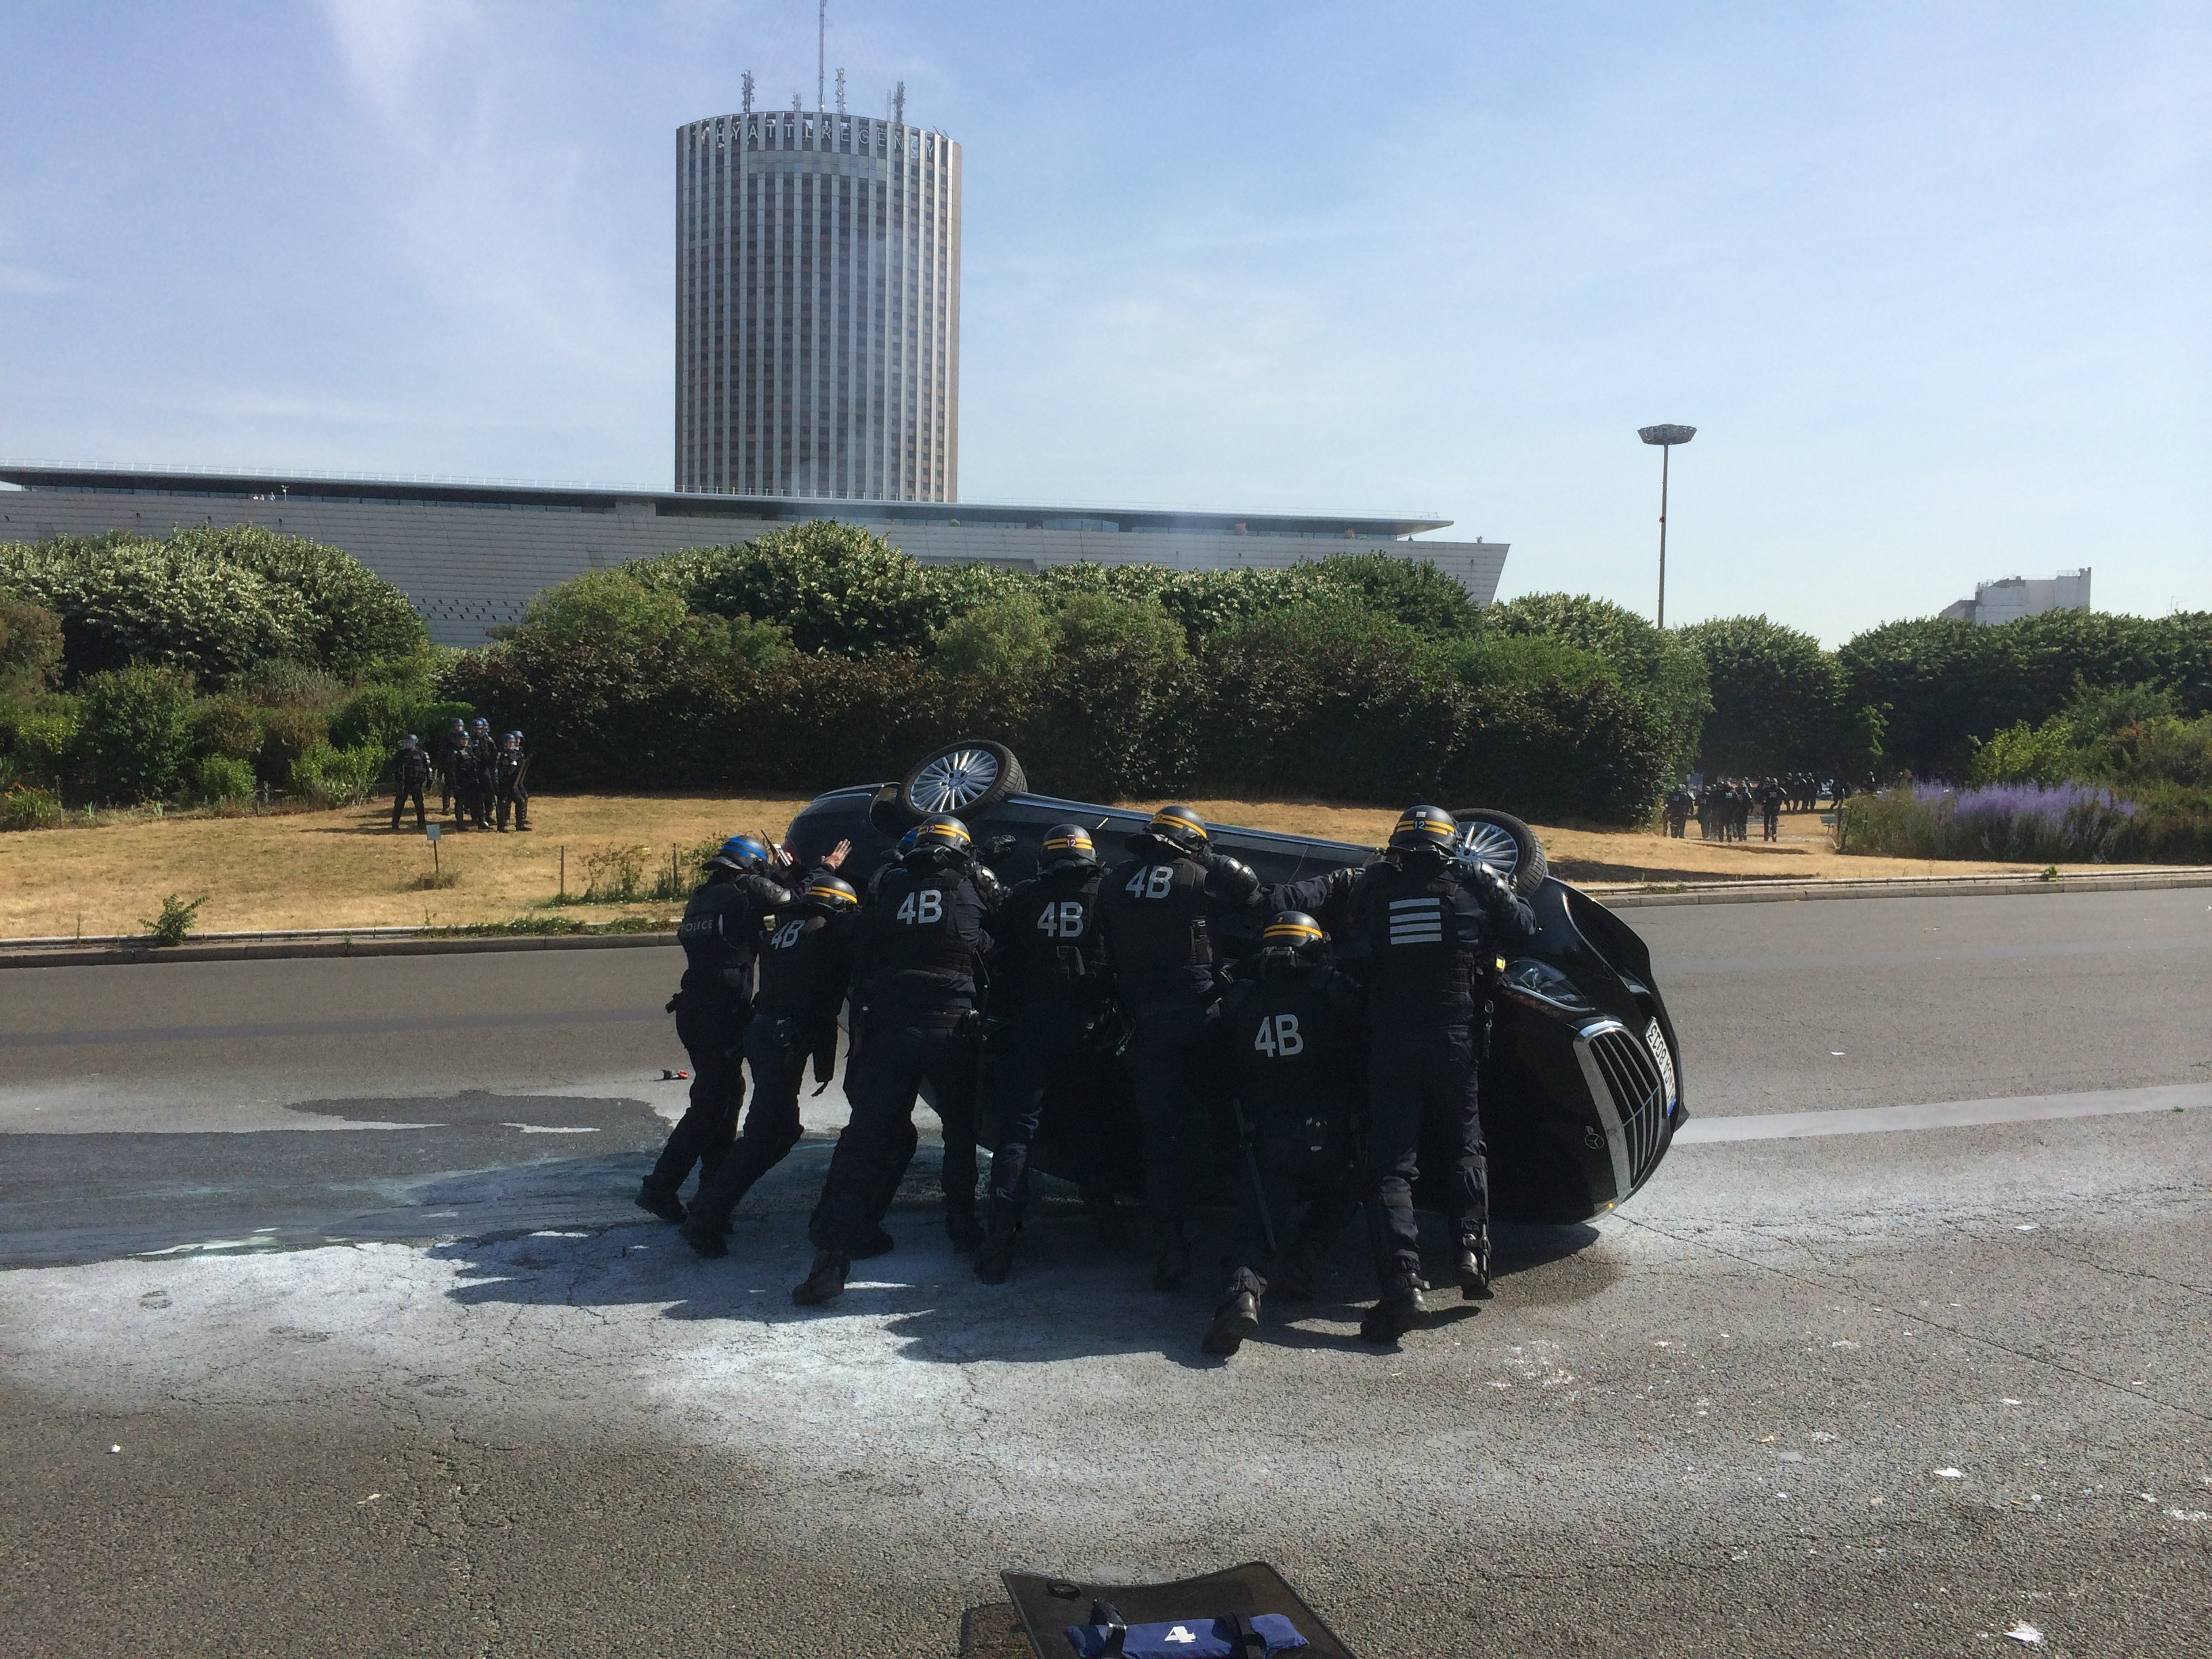 Police officers in riot gear attempt to flip a car back onto it's wheels at Porte Maillot on June 25, 2015 in Paris. Protesters blocked roads to airports and train stations, overturning cars and setting tires on fire.